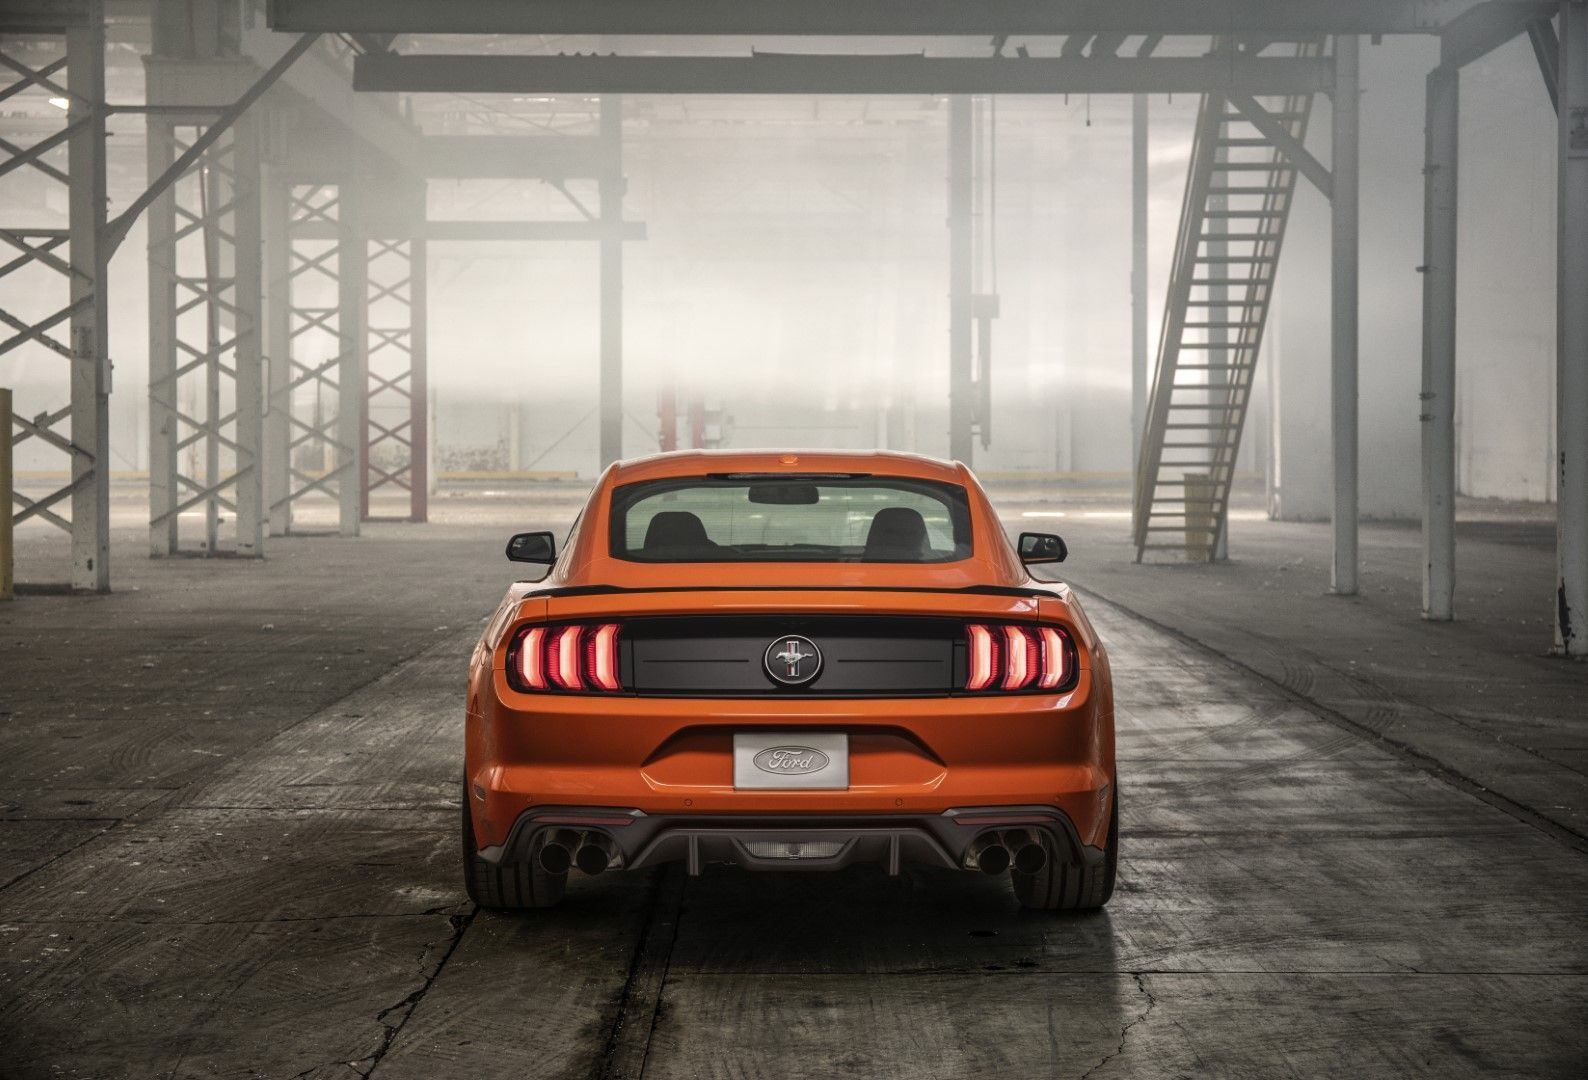 Ford Mustang Ecoboost Performance Pack 1 2018 Mustang Wallpapers Hd Wallpapers Ford Wallpapers Ford Ford Mustang Ecoboost Mustang Ecoboost Ford Mustang Car